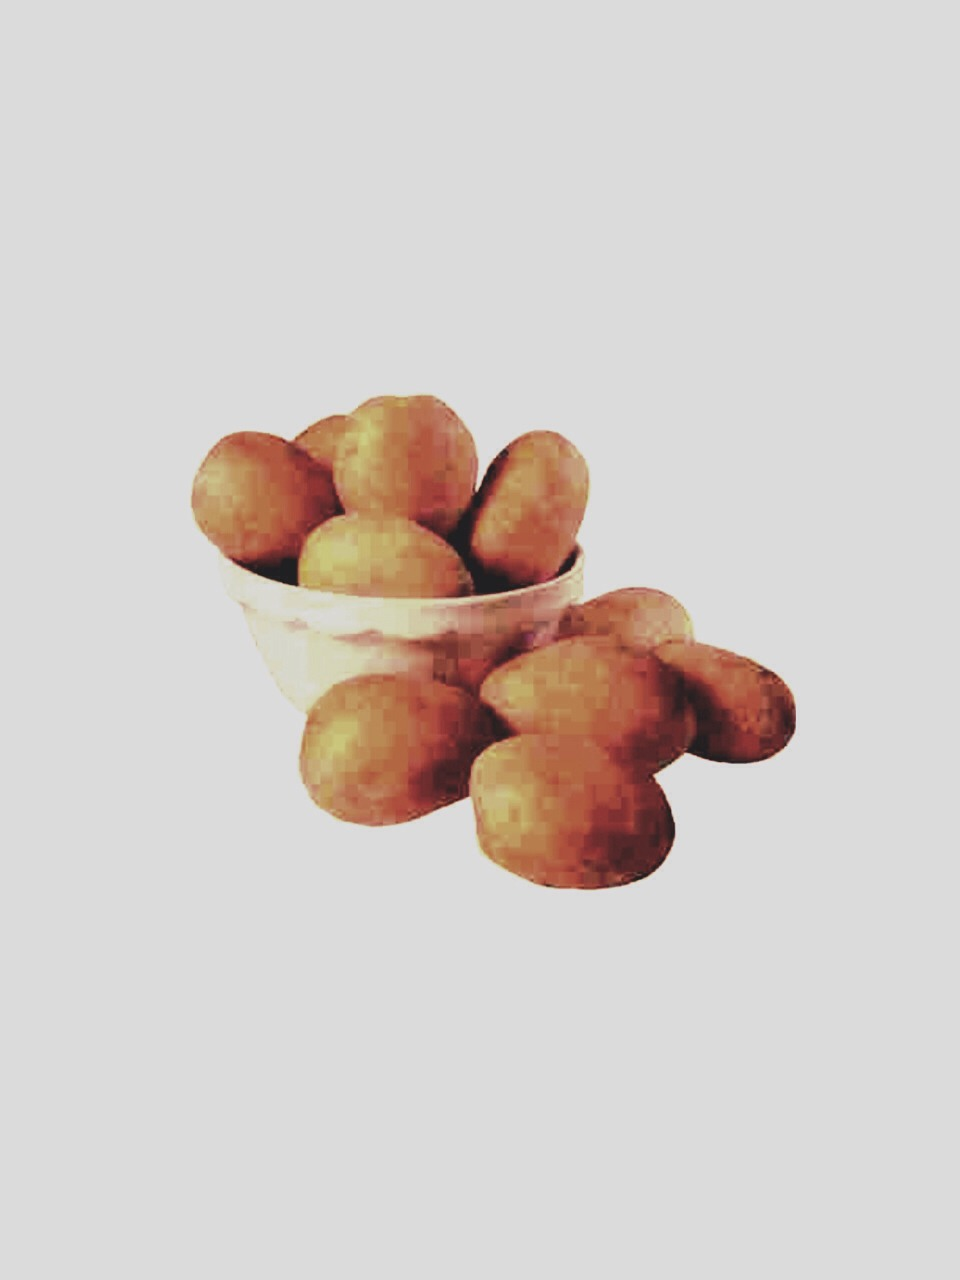 You cut a regular potato in half. Then you rub it into your face and leave it for 10 minutes. Then you wash your face with warm water and pat dry.  The potato absorb the oil on your skin and drys out your acne! 😮😄